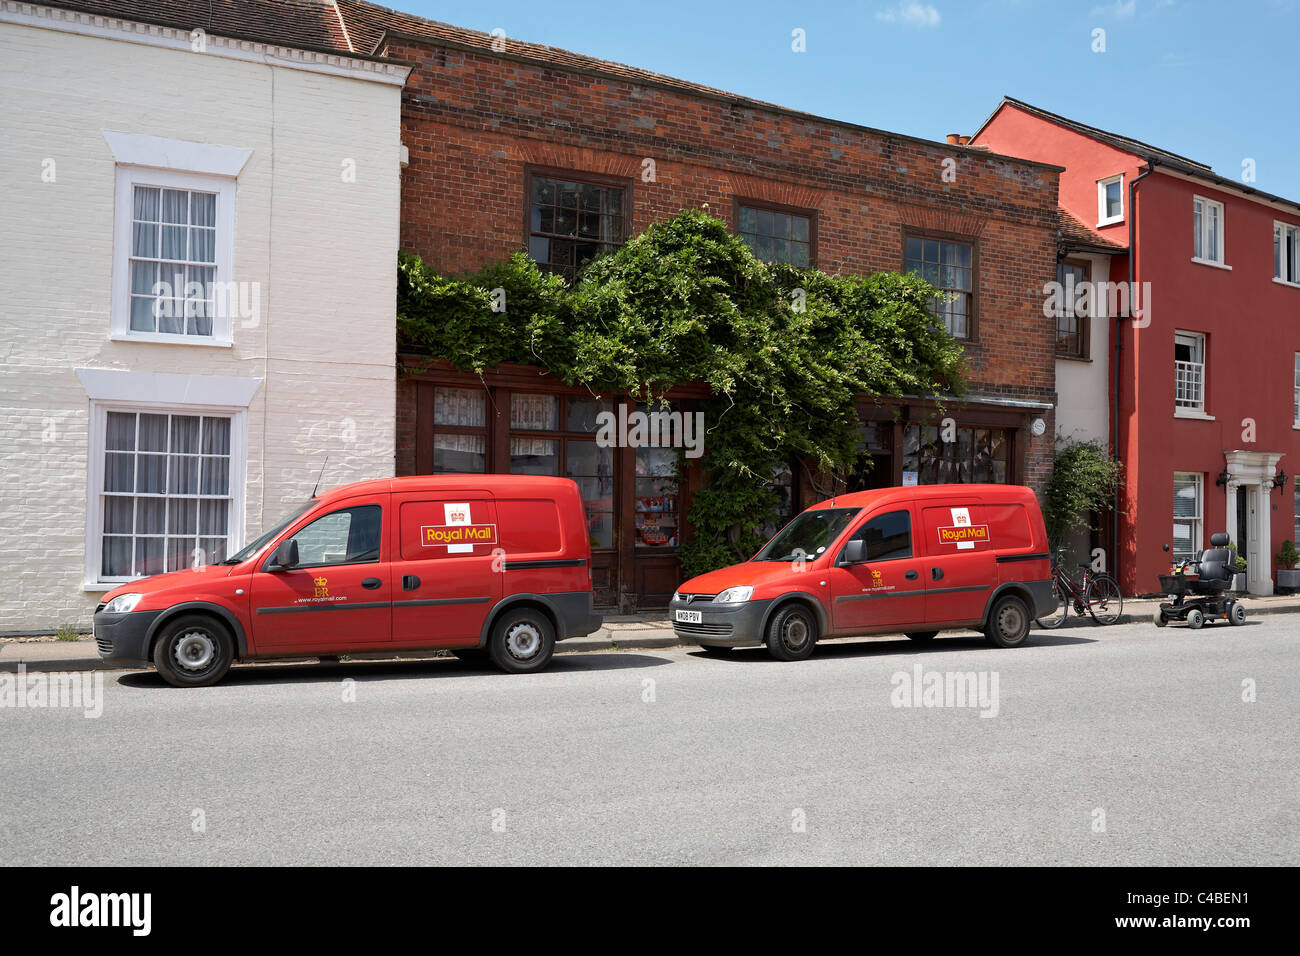 2b959f21cc Great Britain Essex Nayland Village Post Office with Royal Mail Red Vans  parked outside - Stock